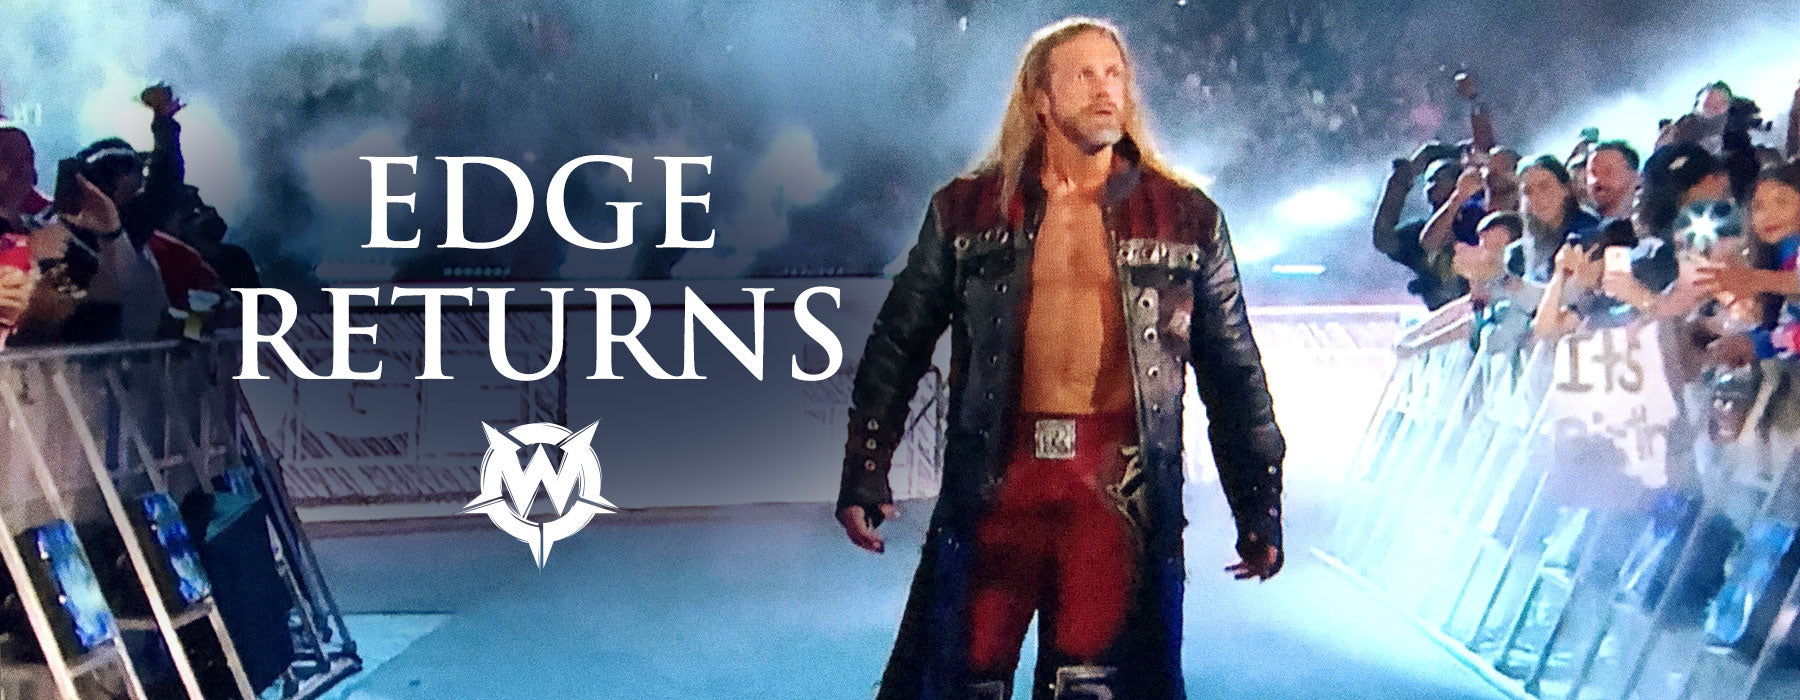 Edge Makes Surprise Return to WWE Royal Rumble with Wornstar Clothing